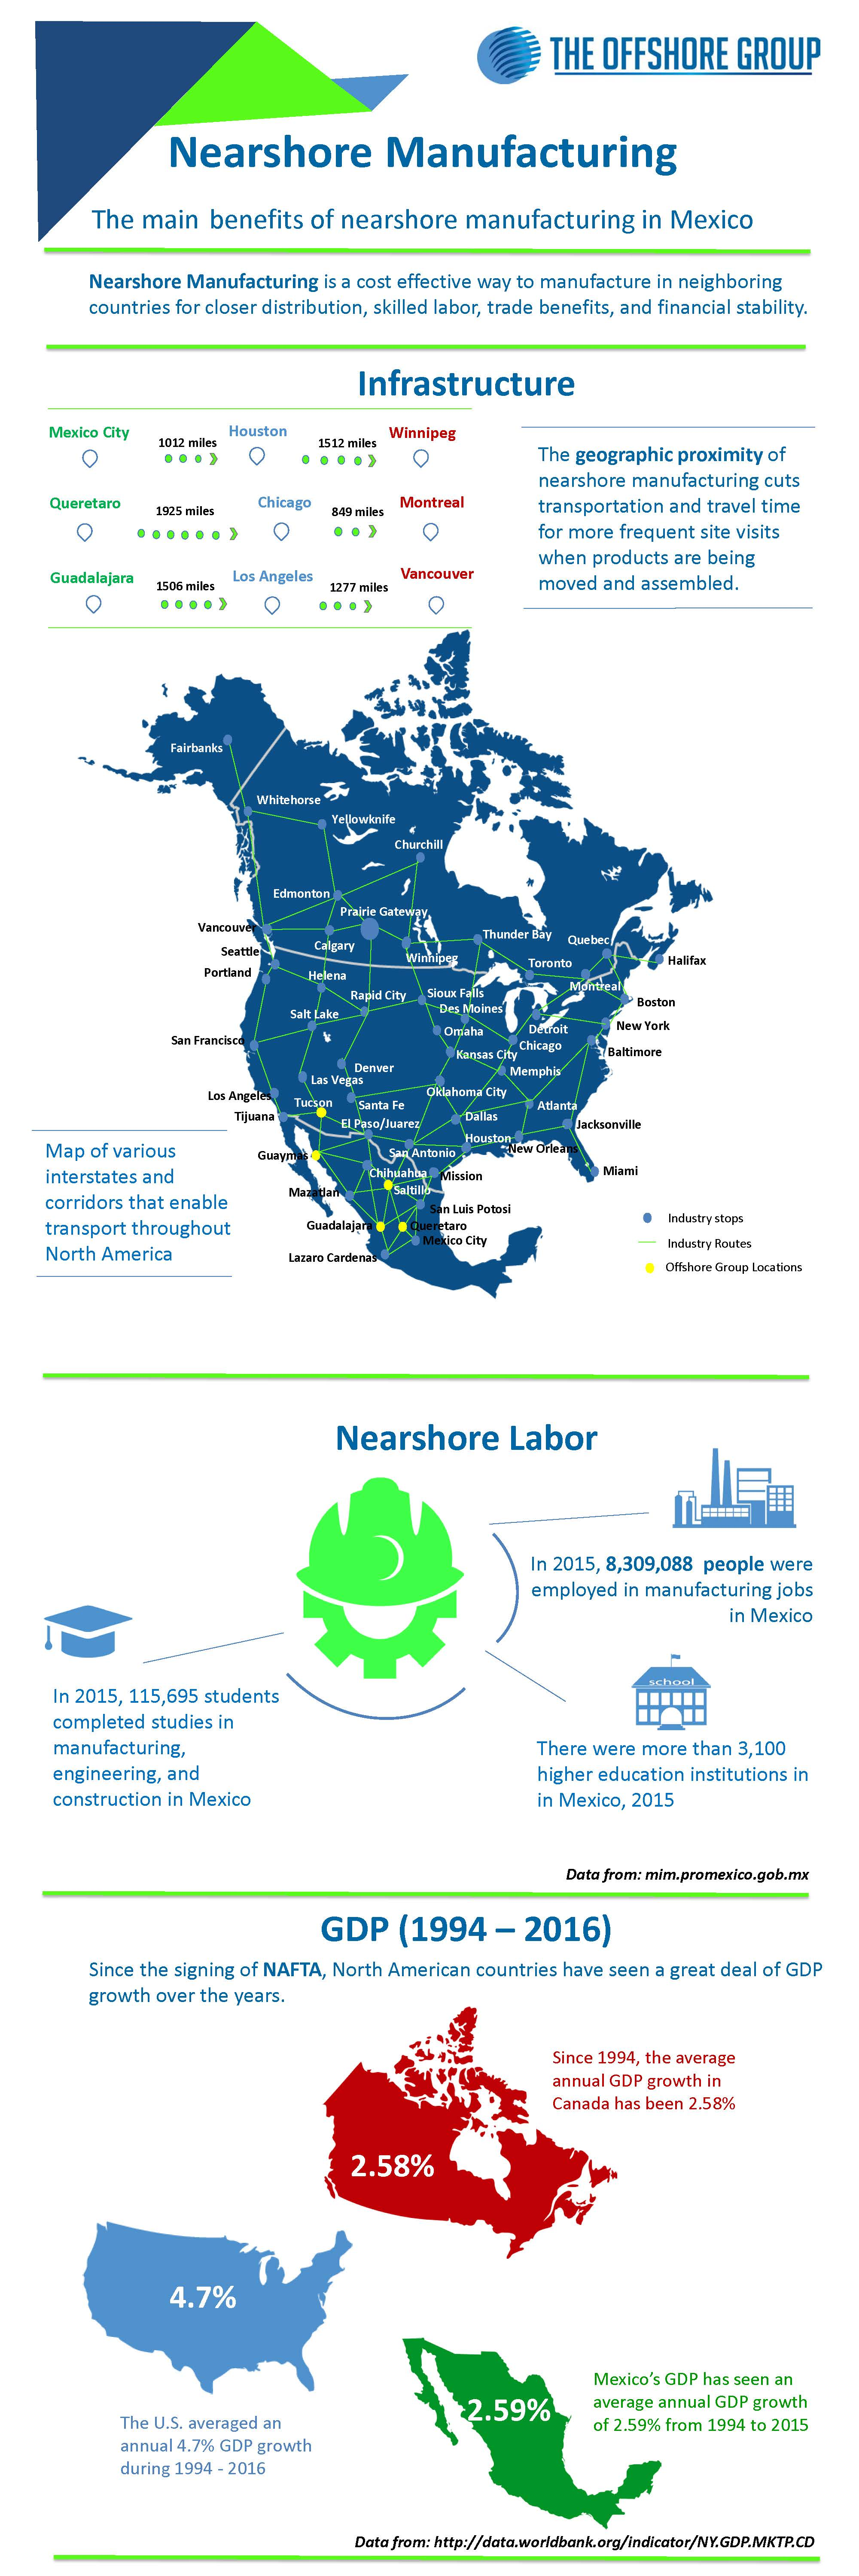 The main benefits of nearshore manufacturing in Mexico